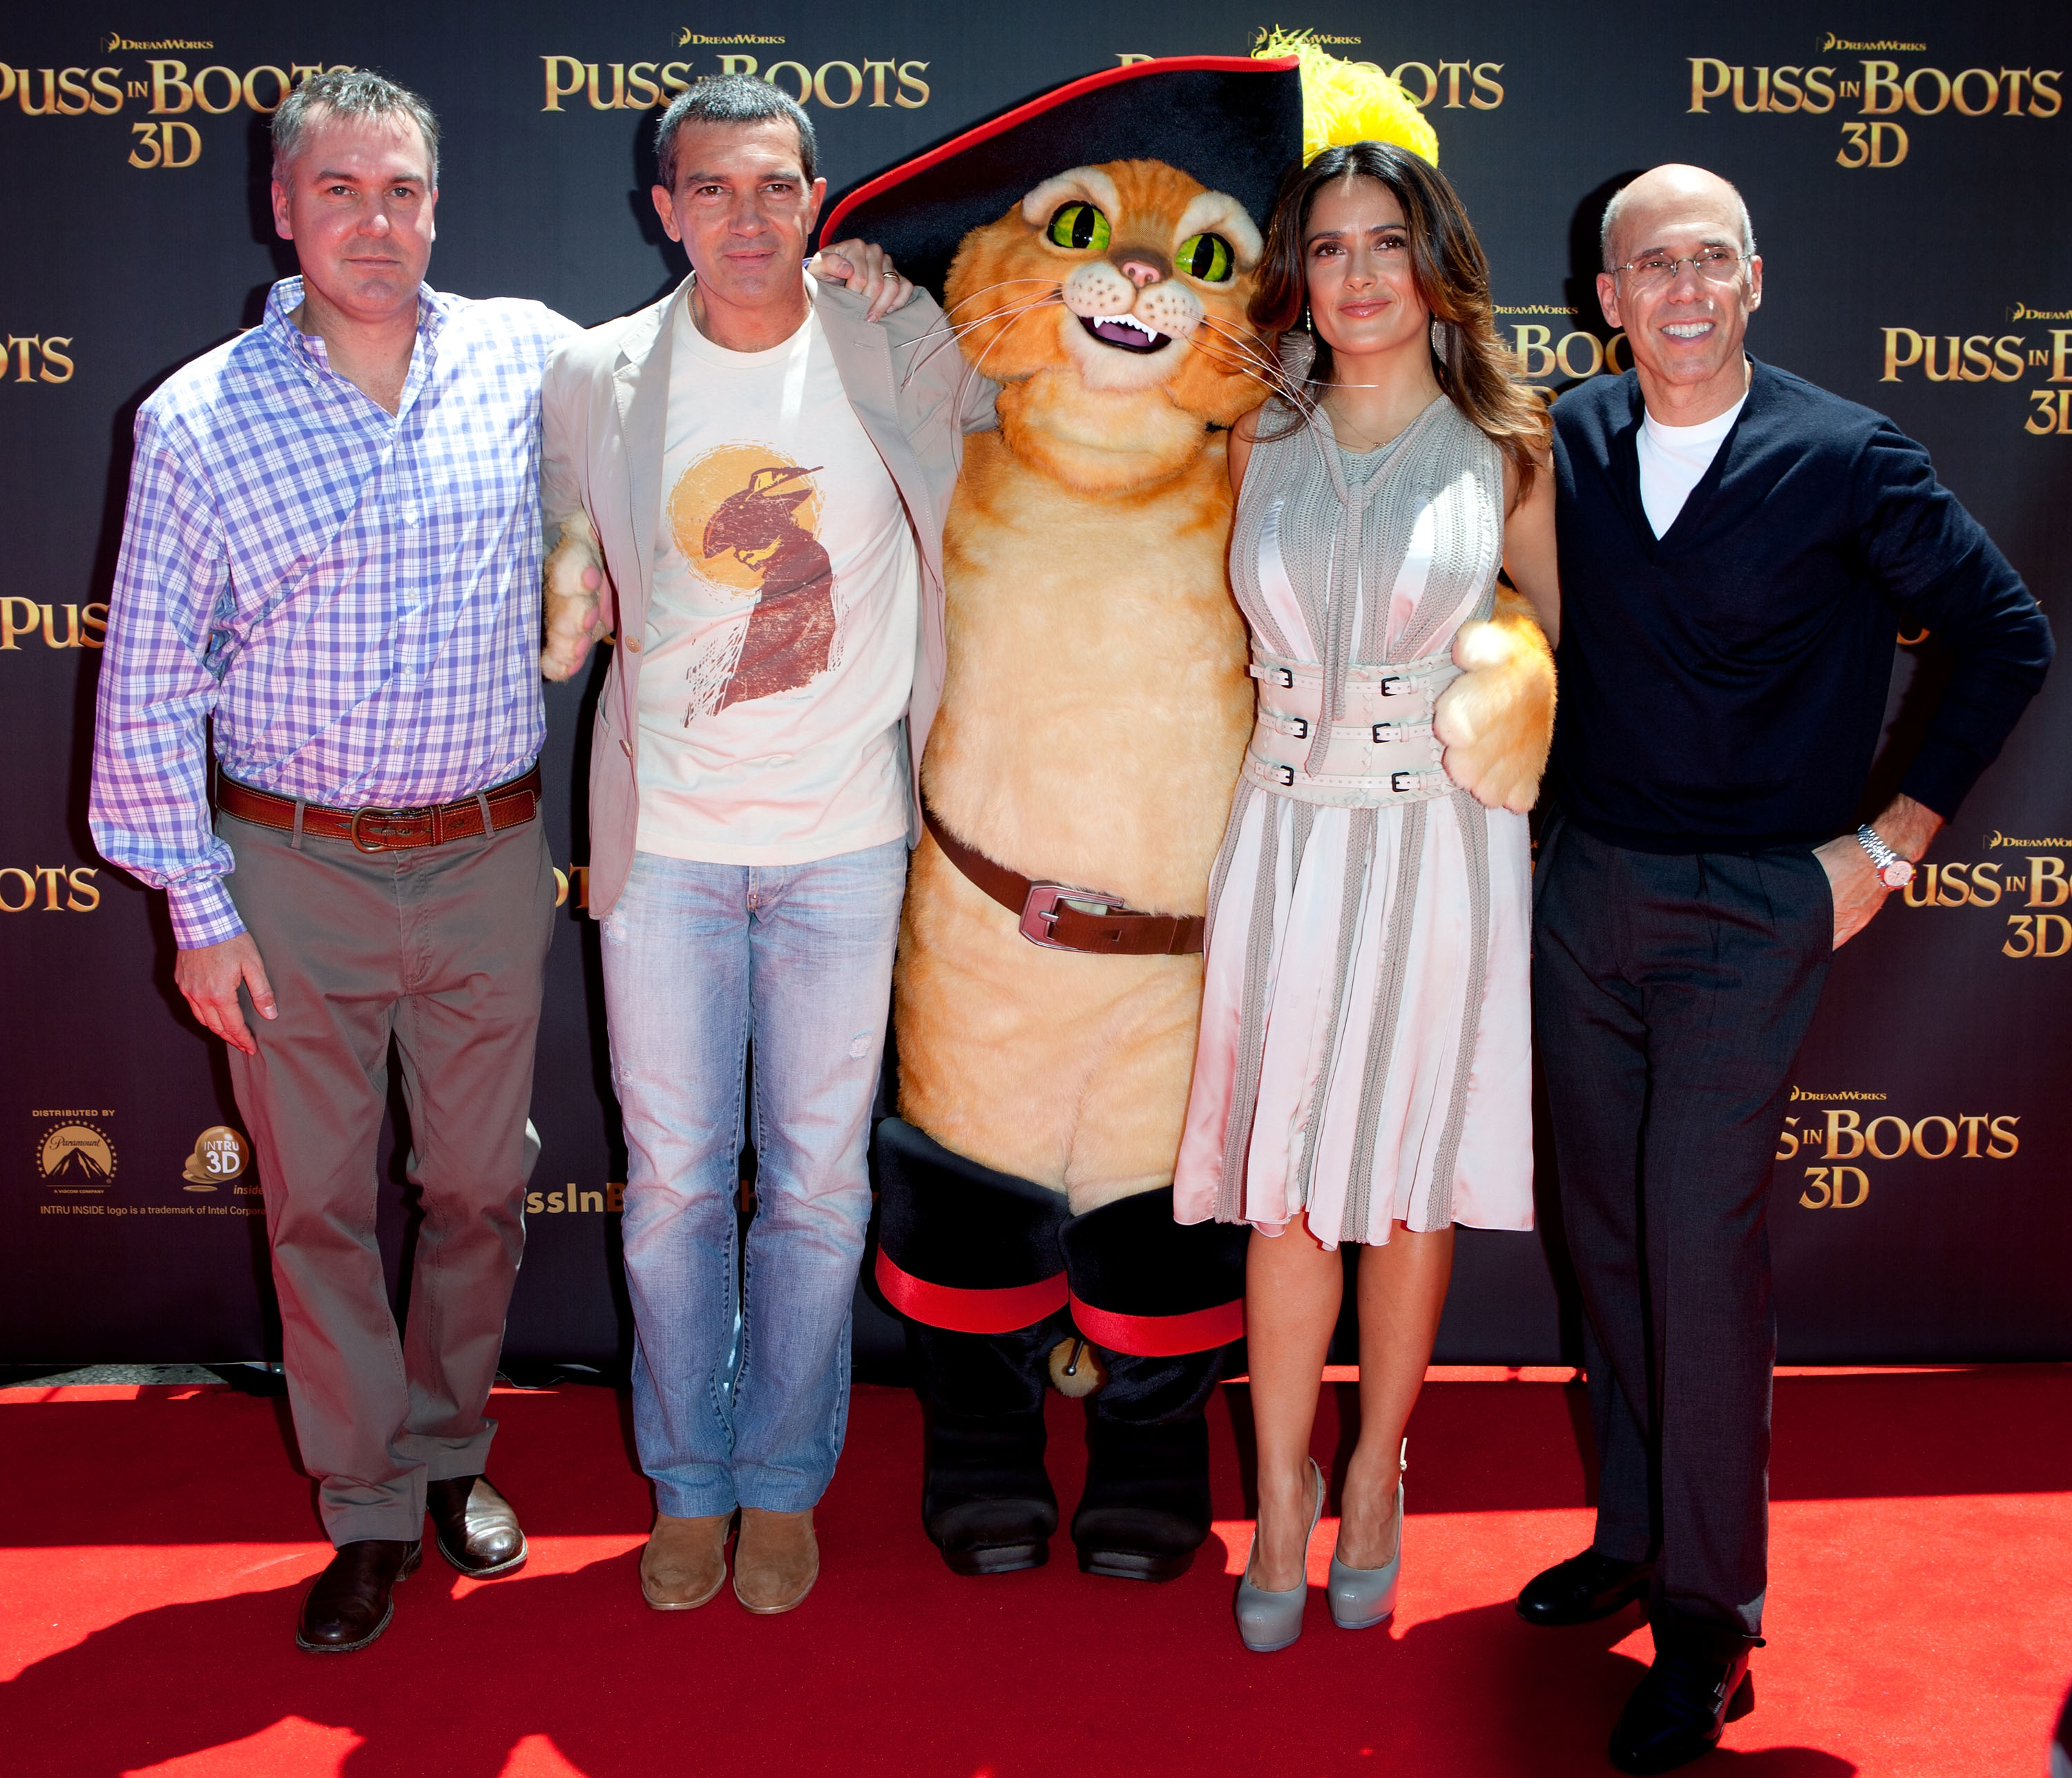 Chris Miller, Antonio Banderas, Puss, Salma Hayek and Jeffrey Katzenberg